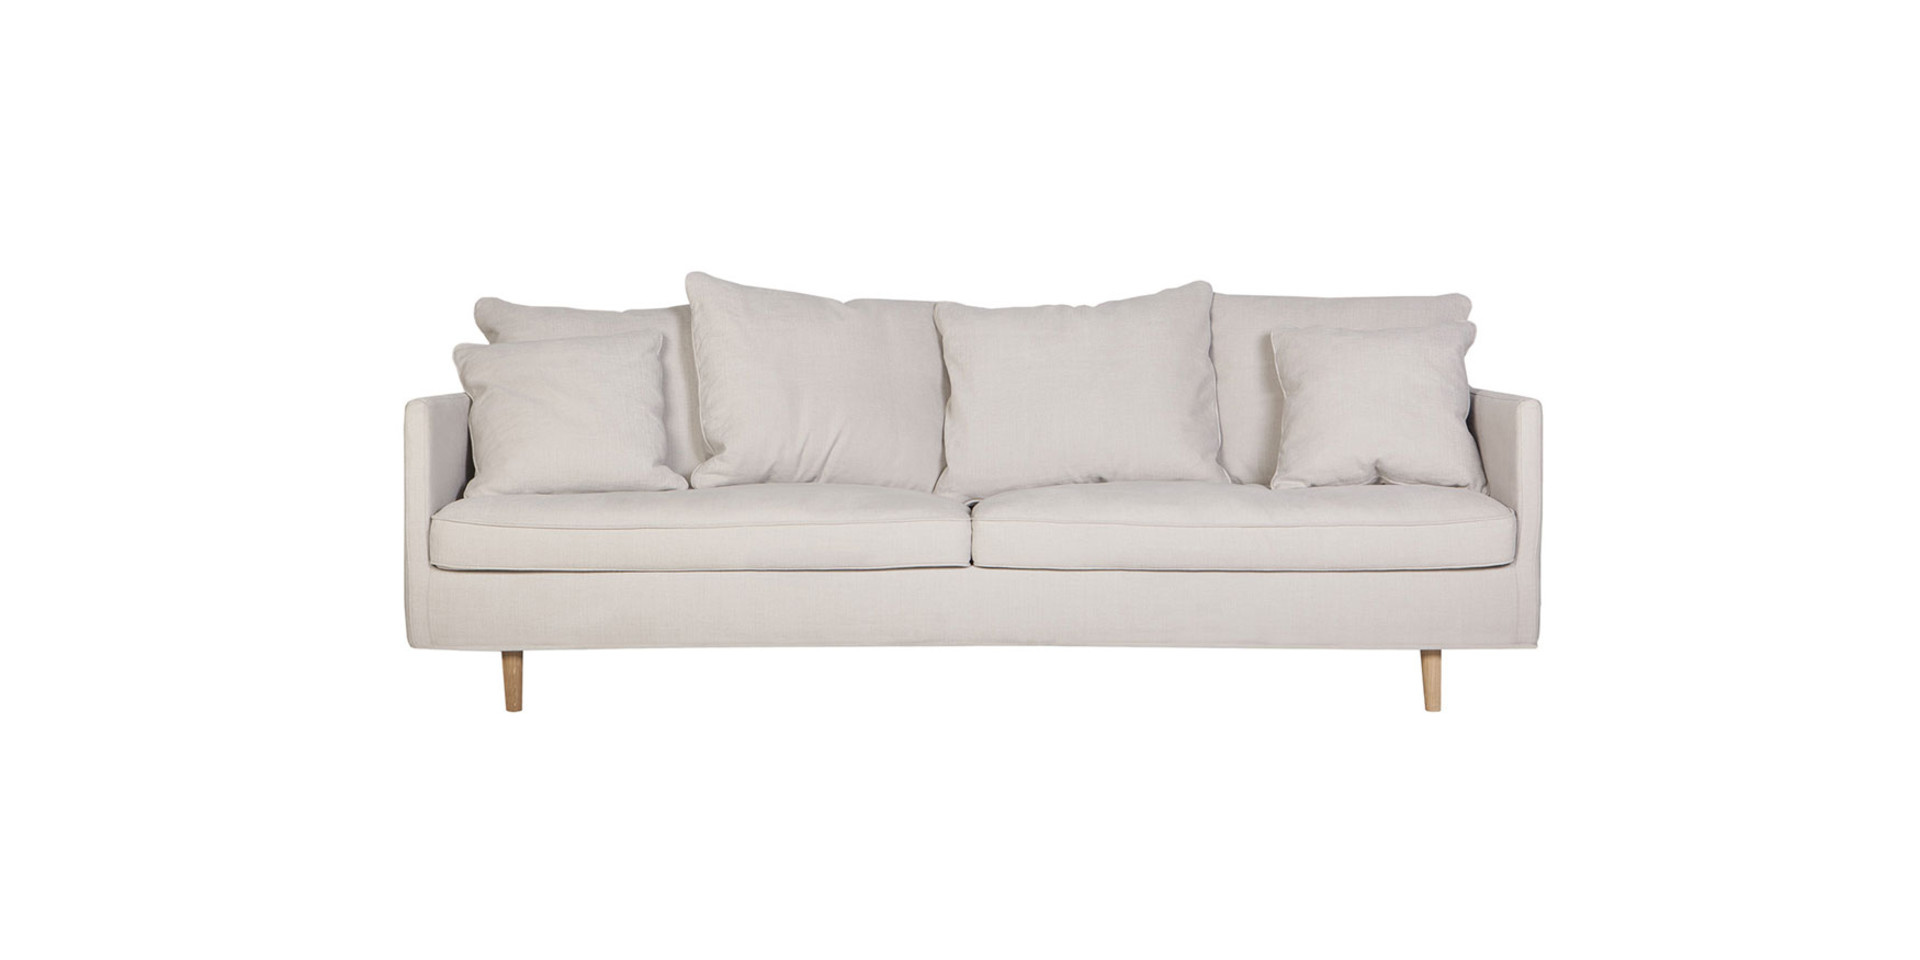 sits-julia-canape-3seater_caleido3790_light_beige_1